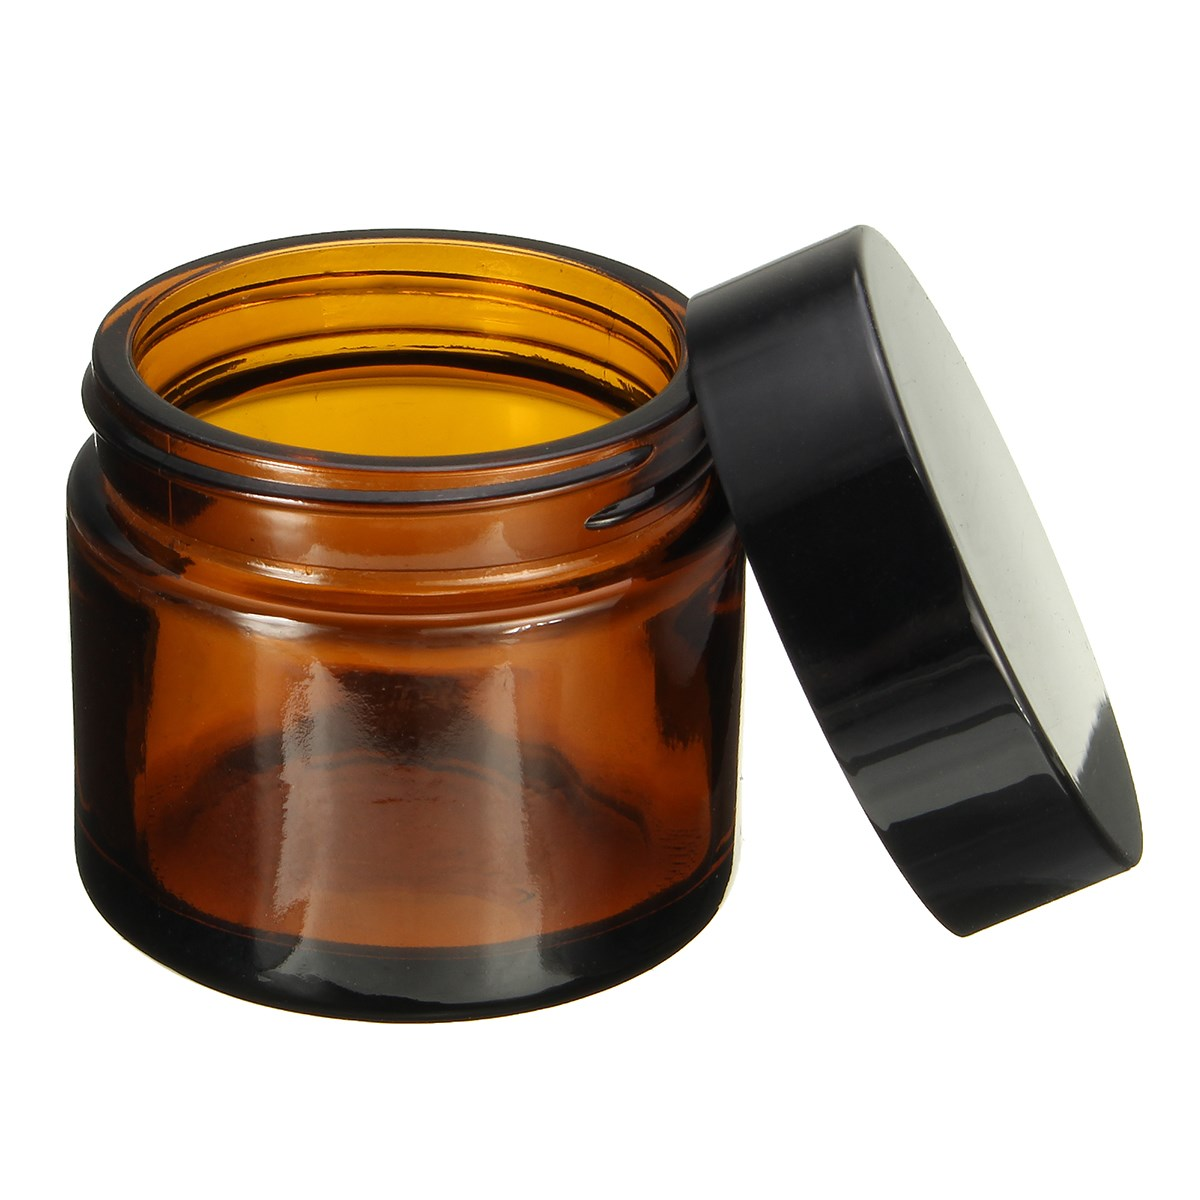 1pcs 60ml amber glass jar pot skin care cream refillable bottle cosmetic container makeup tool. Black Bedroom Furniture Sets. Home Design Ideas